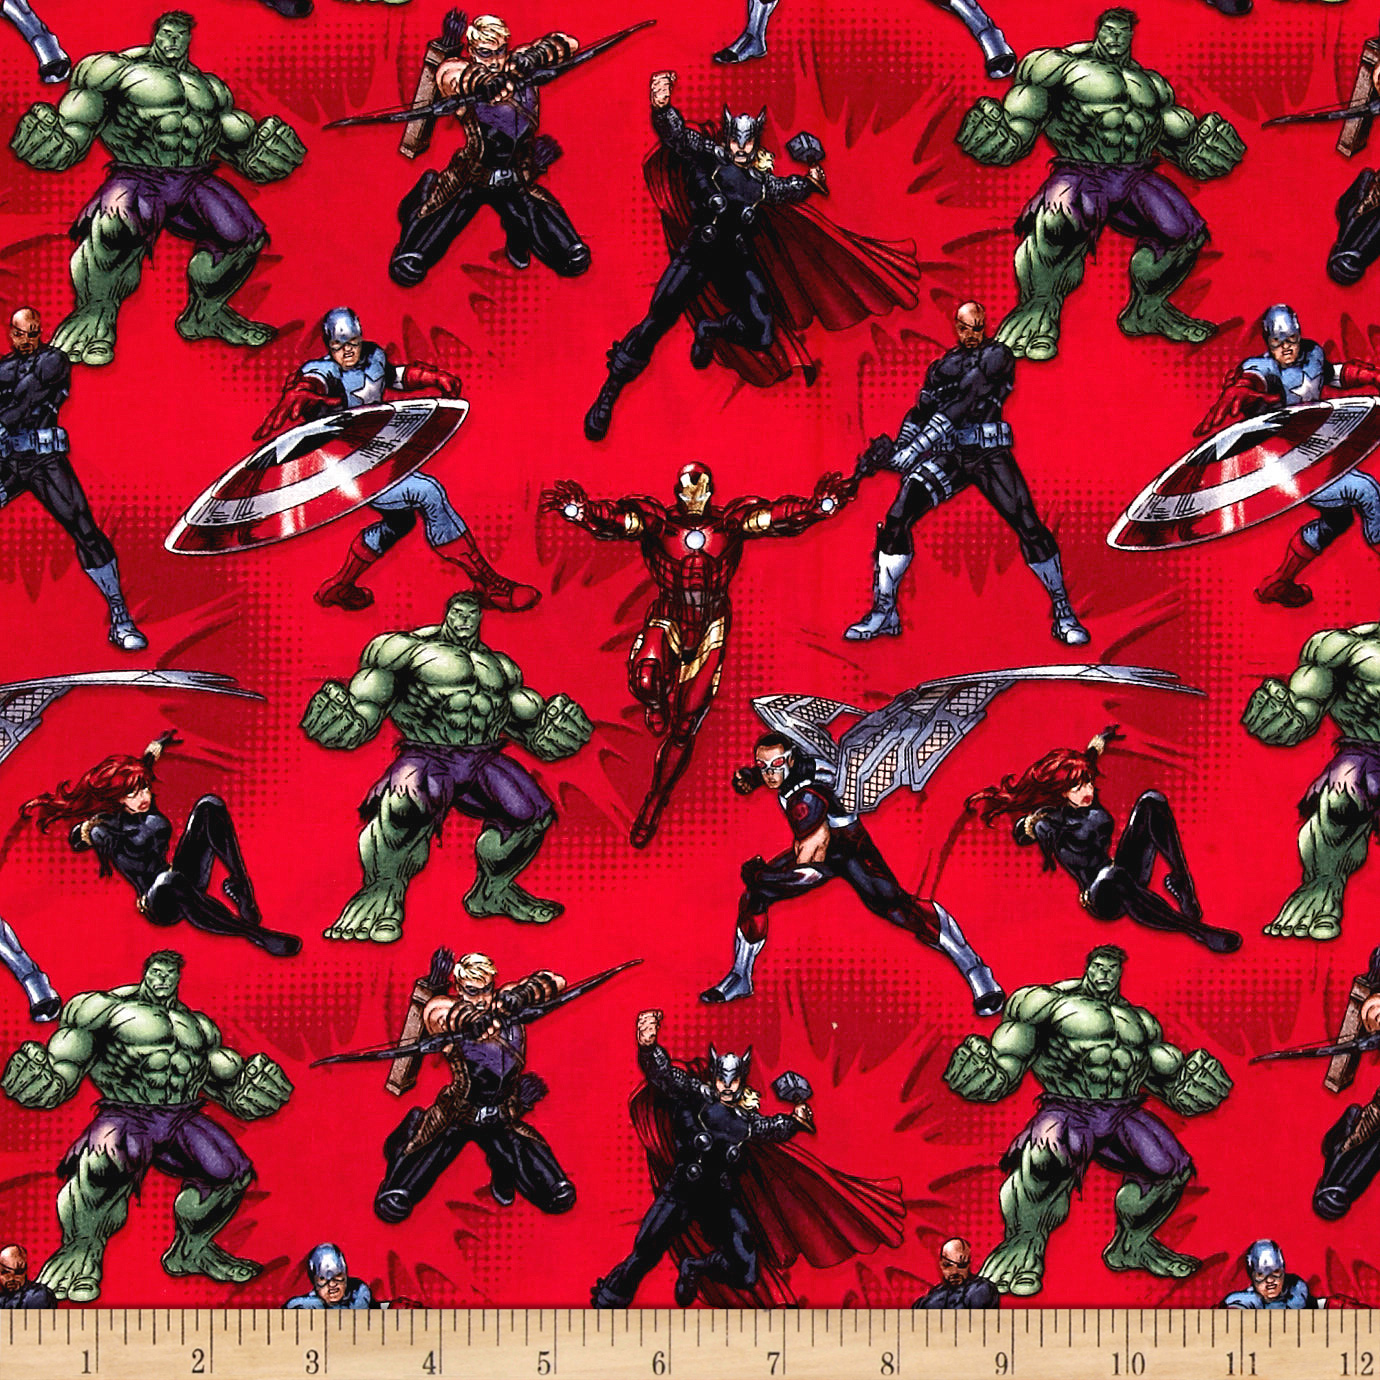 Image of Marvel Avengers Avengers Action Red Fabric